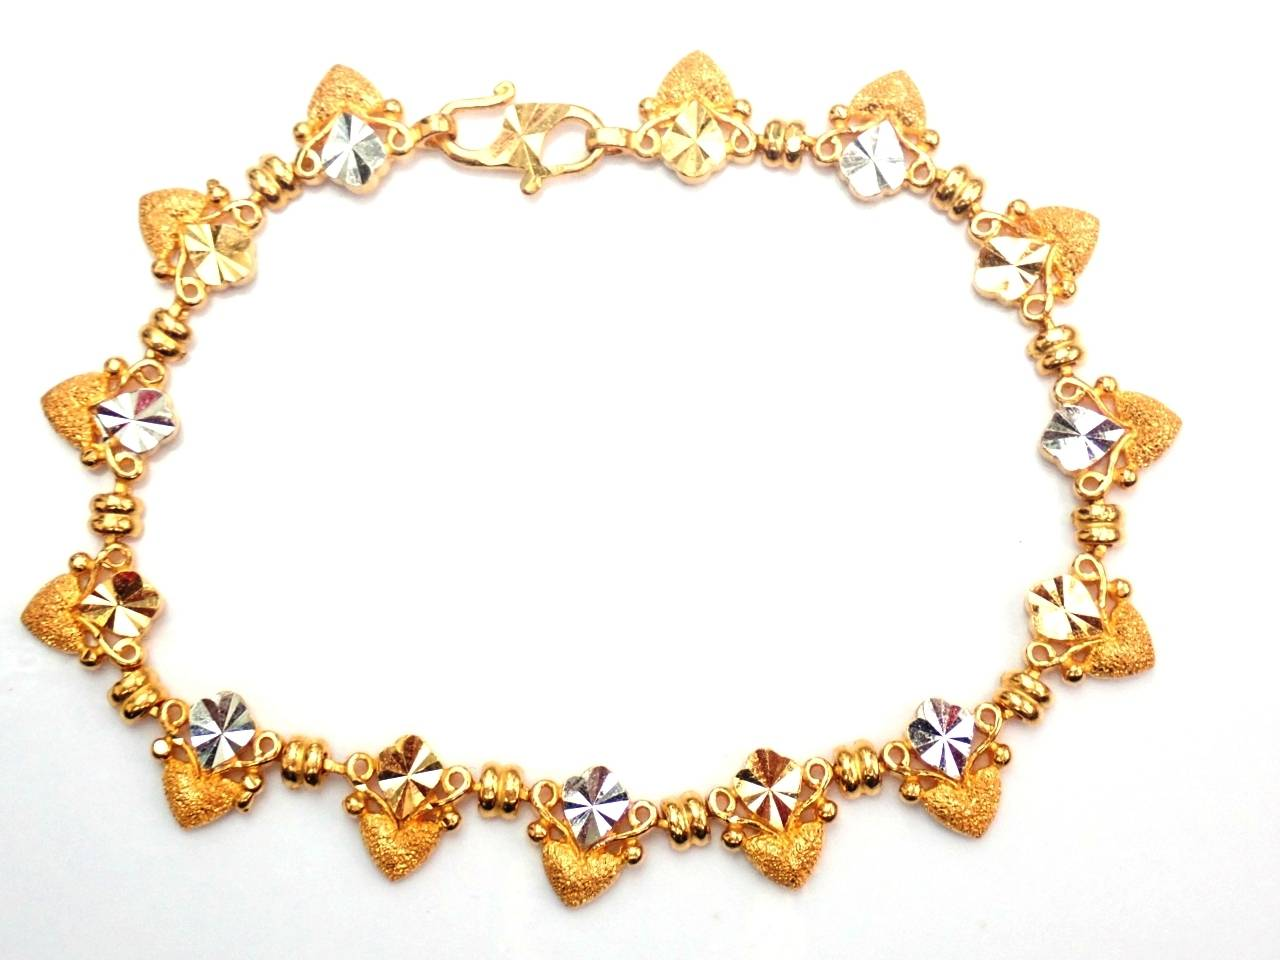 22k Solid Gold Fancy Heart Chain Bracelet 73/4